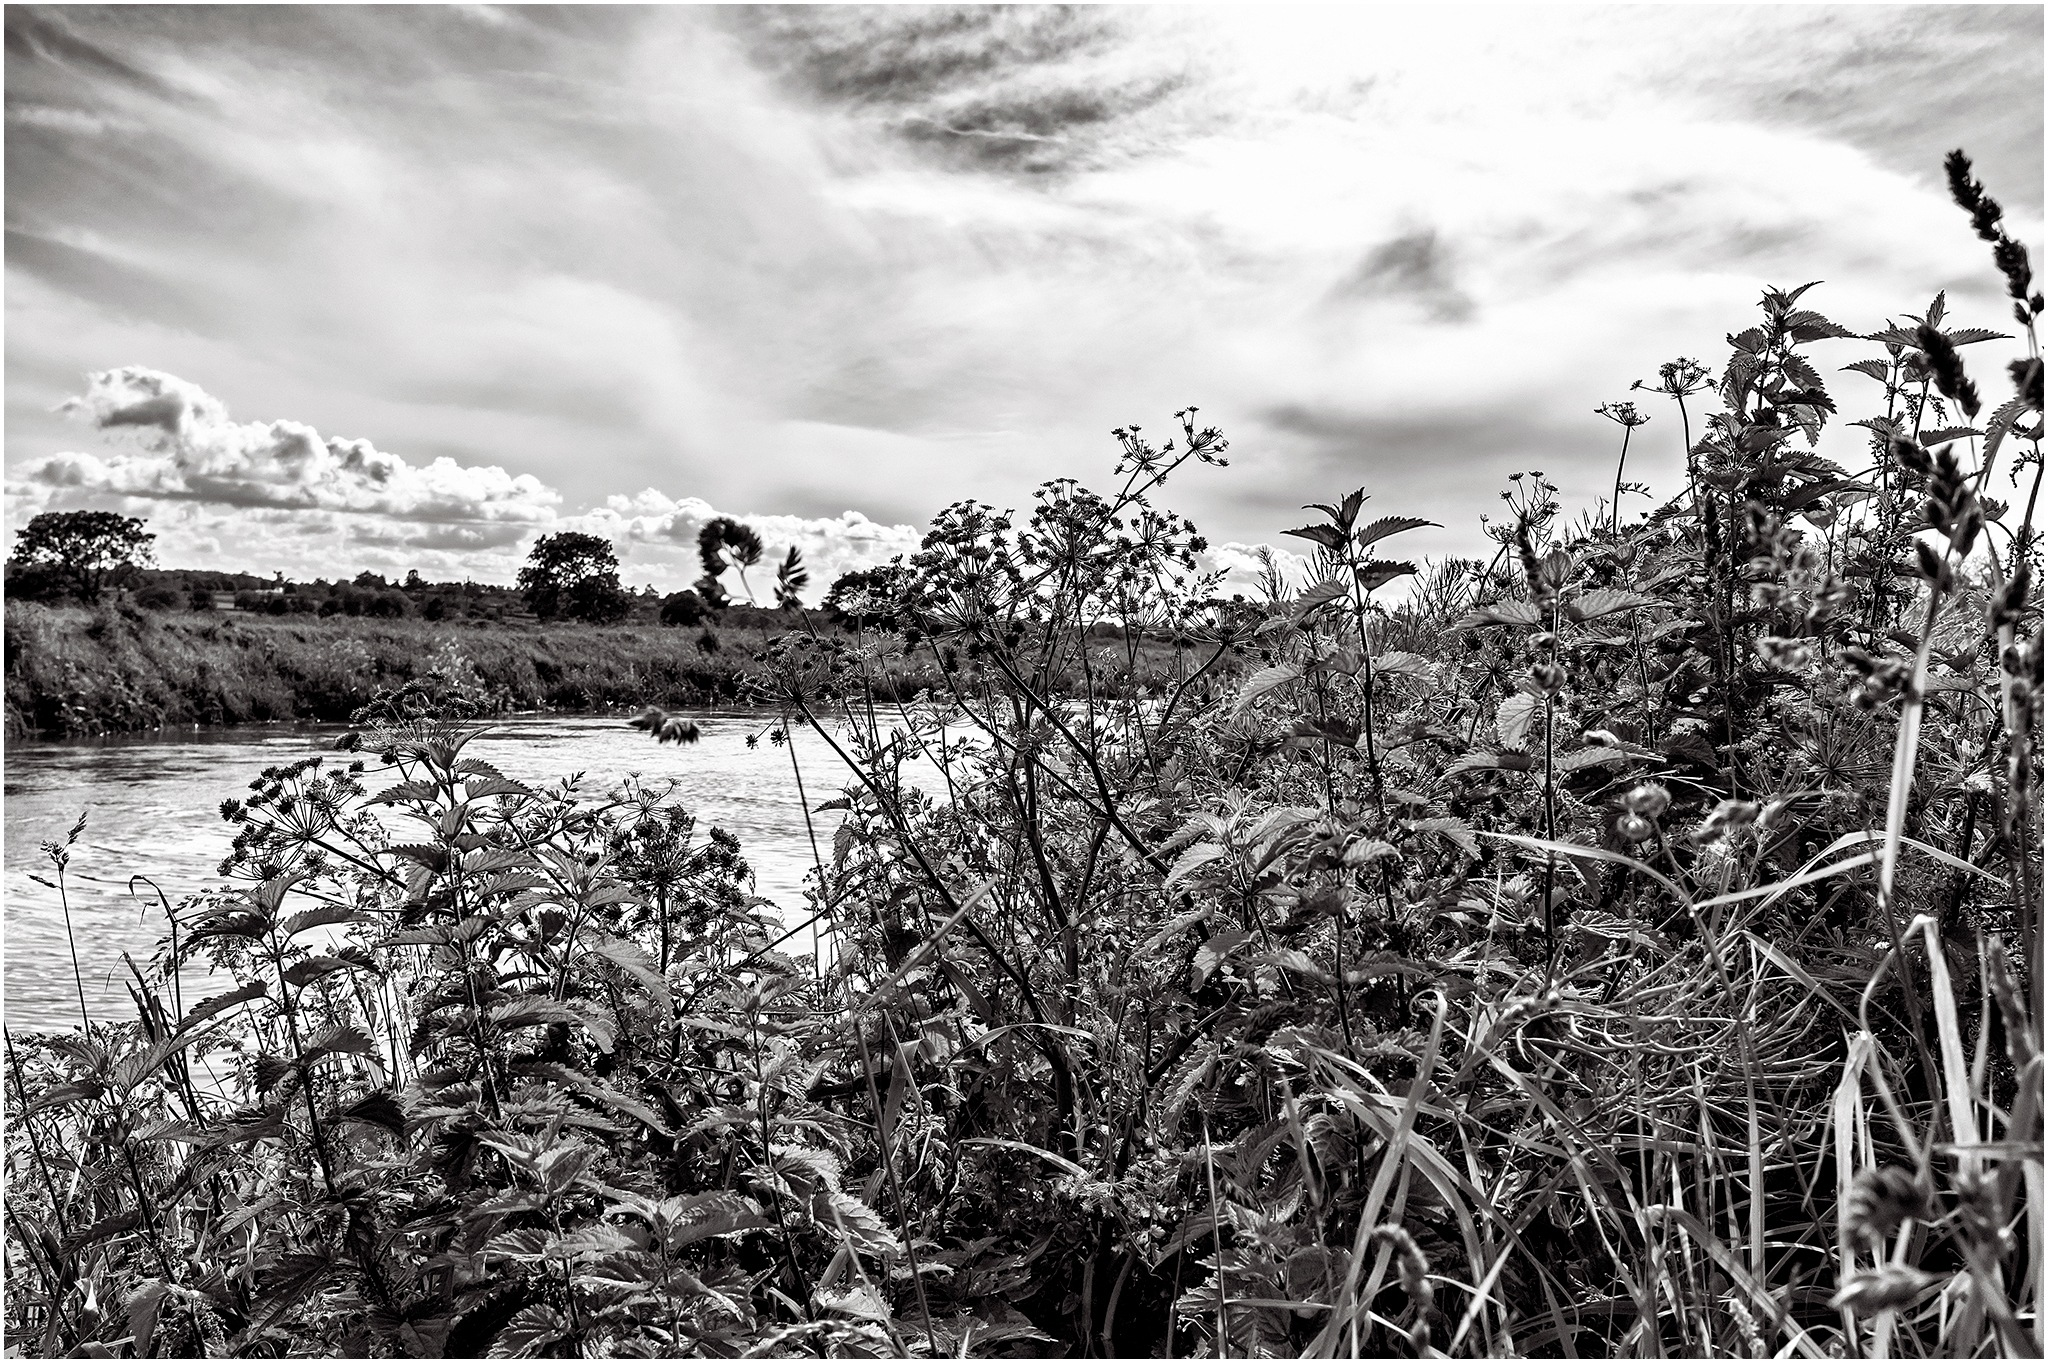 Down by the River - B&W by Clive Ayron